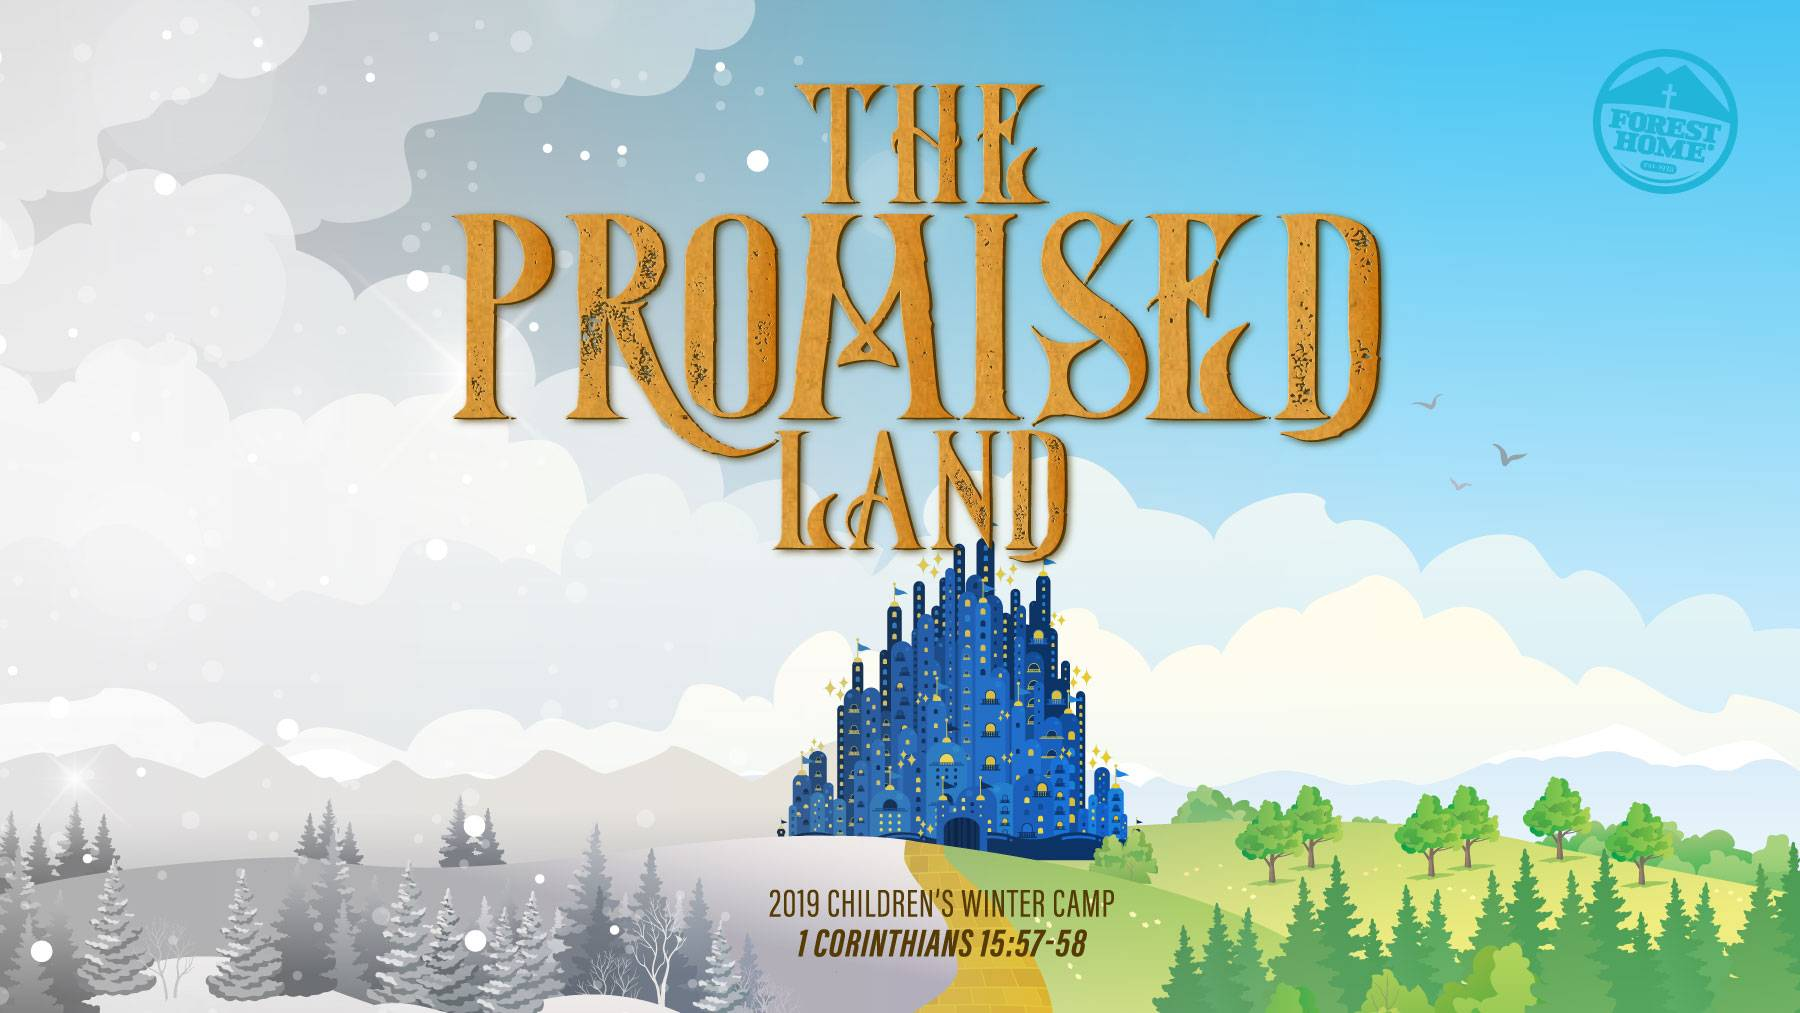 The Promised Land Winter Camp for Children in January 2019